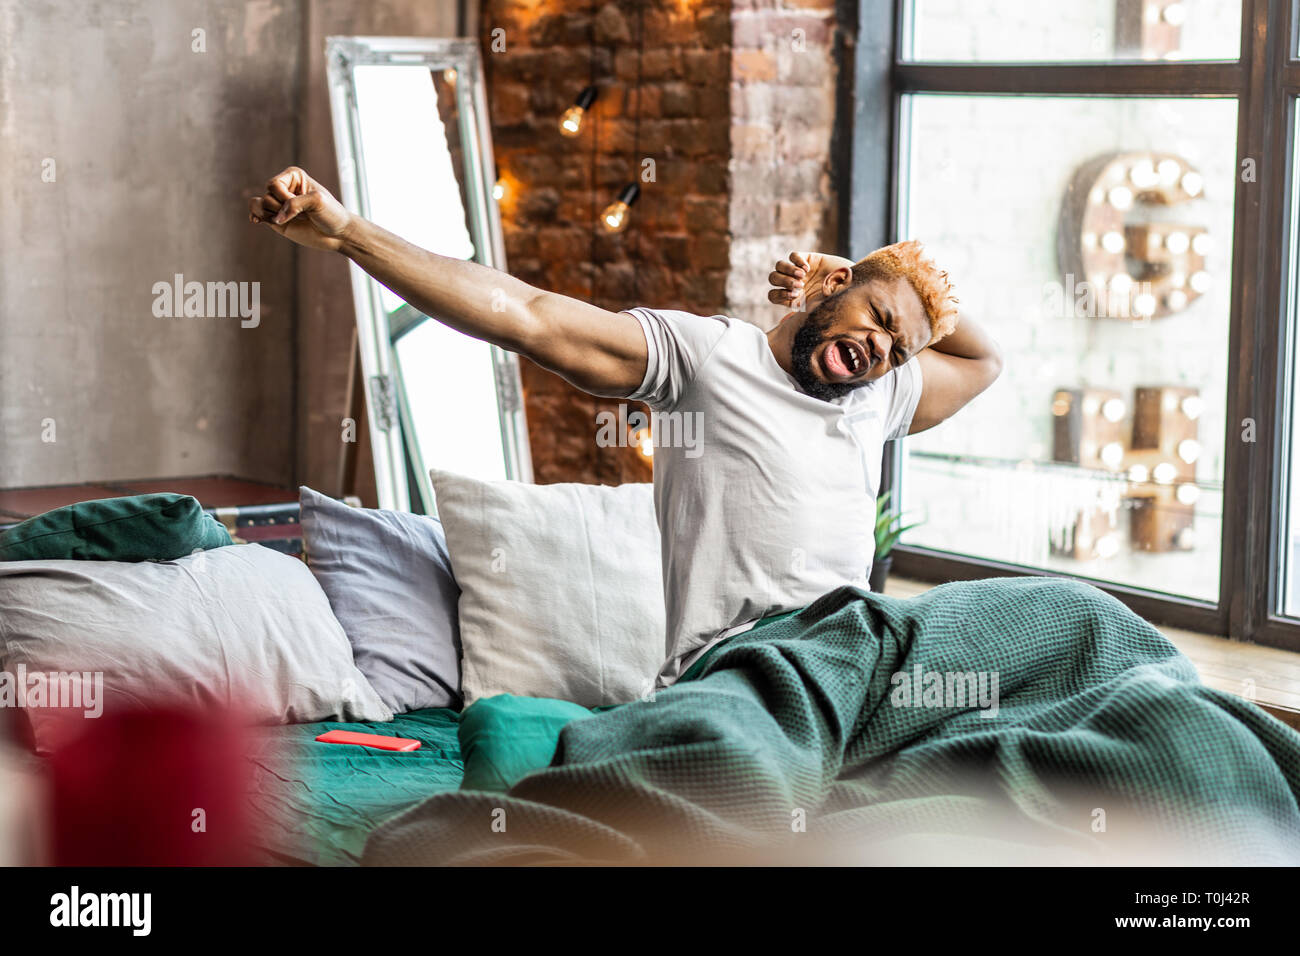 Pleasant Afro American man waking up in his bed - Stock Image